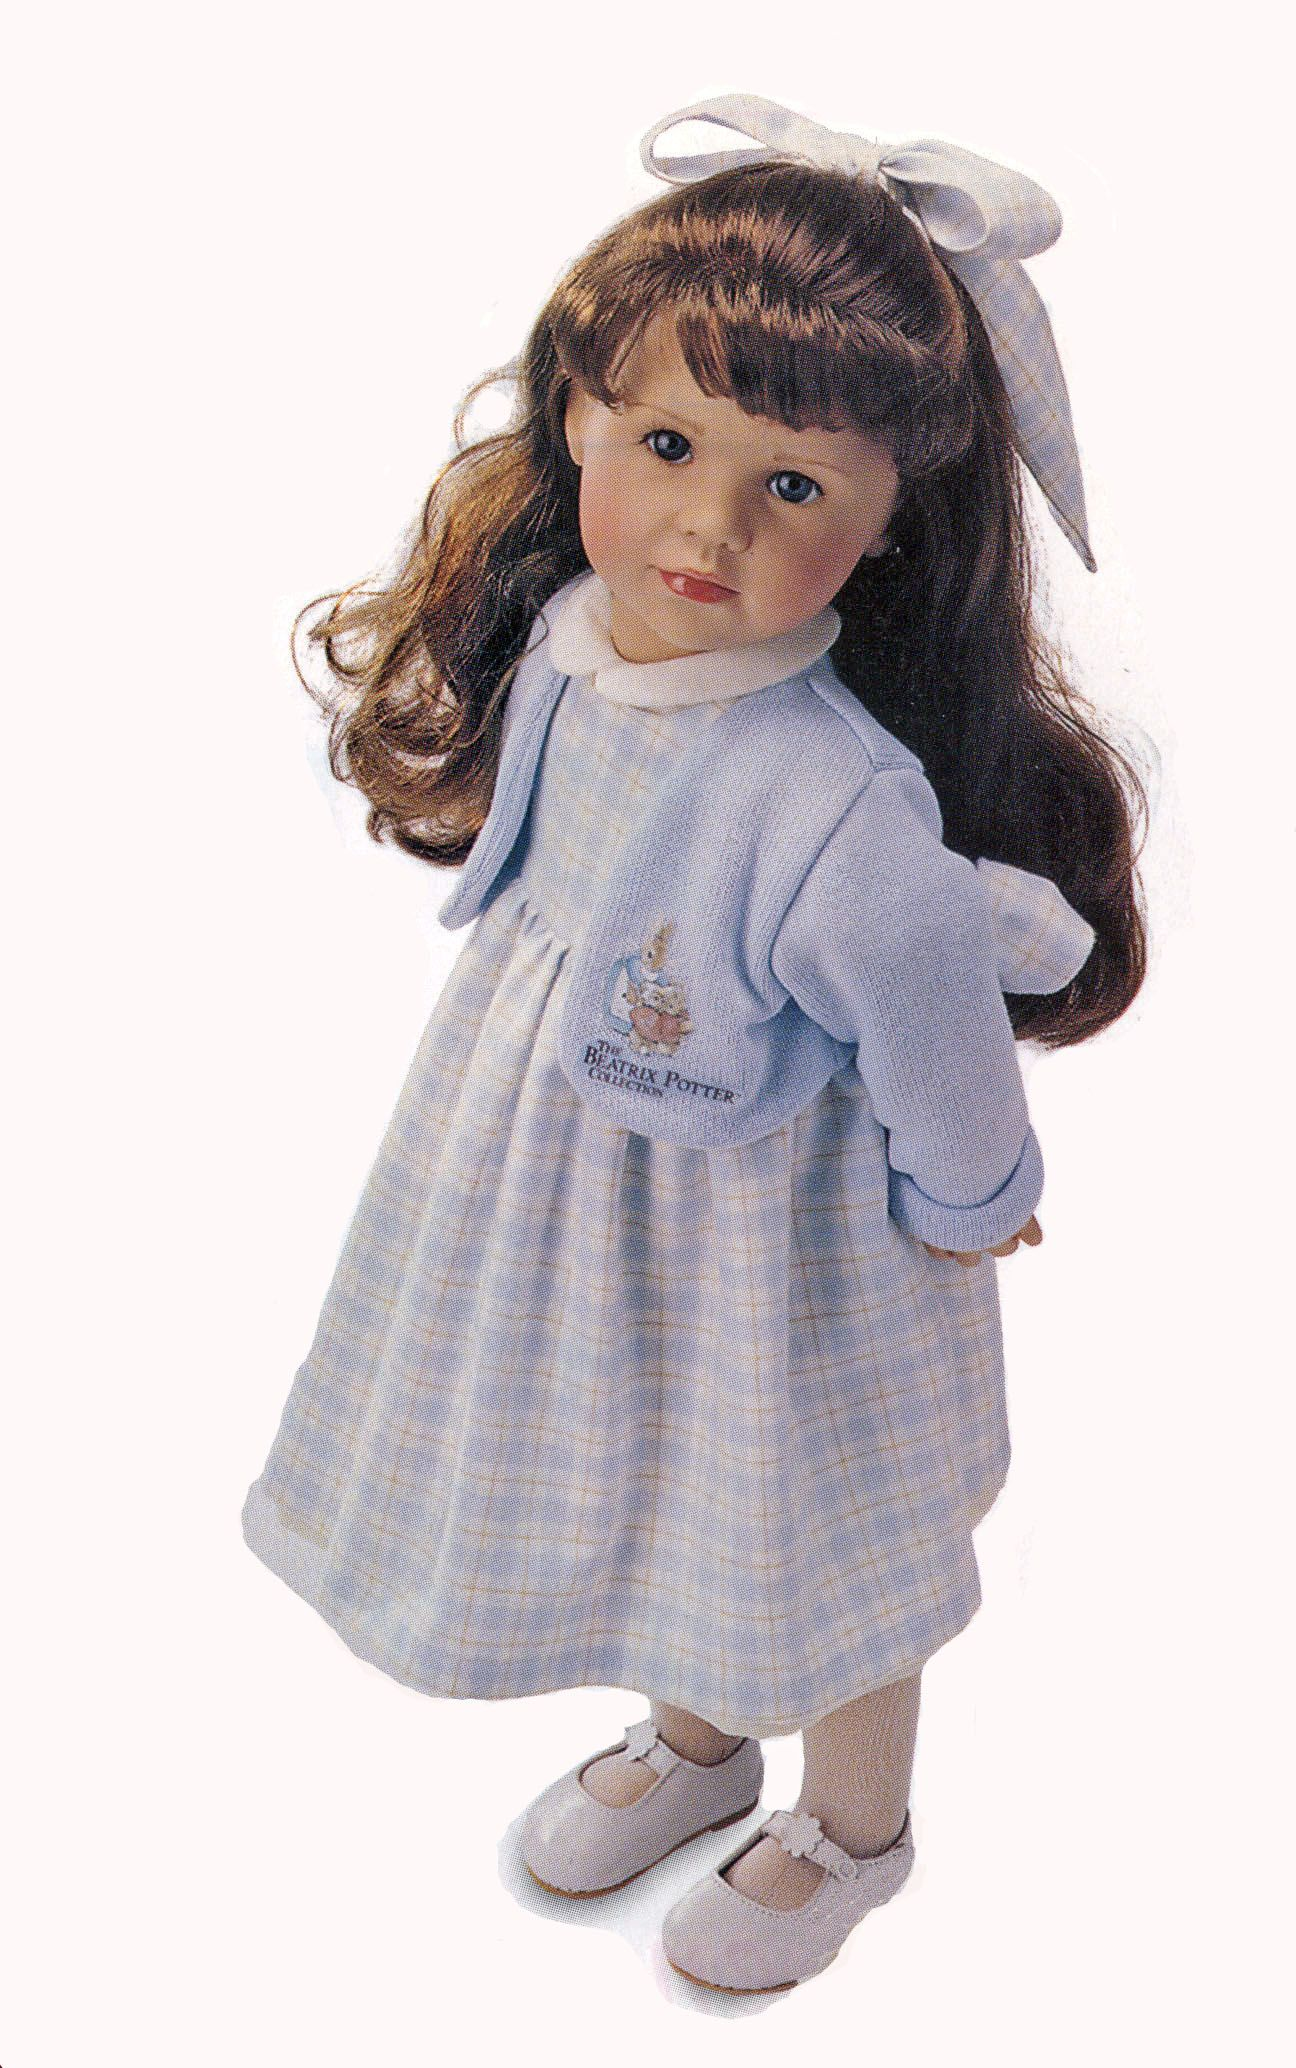 Brooke, from the Beatrix Potter Collection, by Gotz dolls. 23 inches.